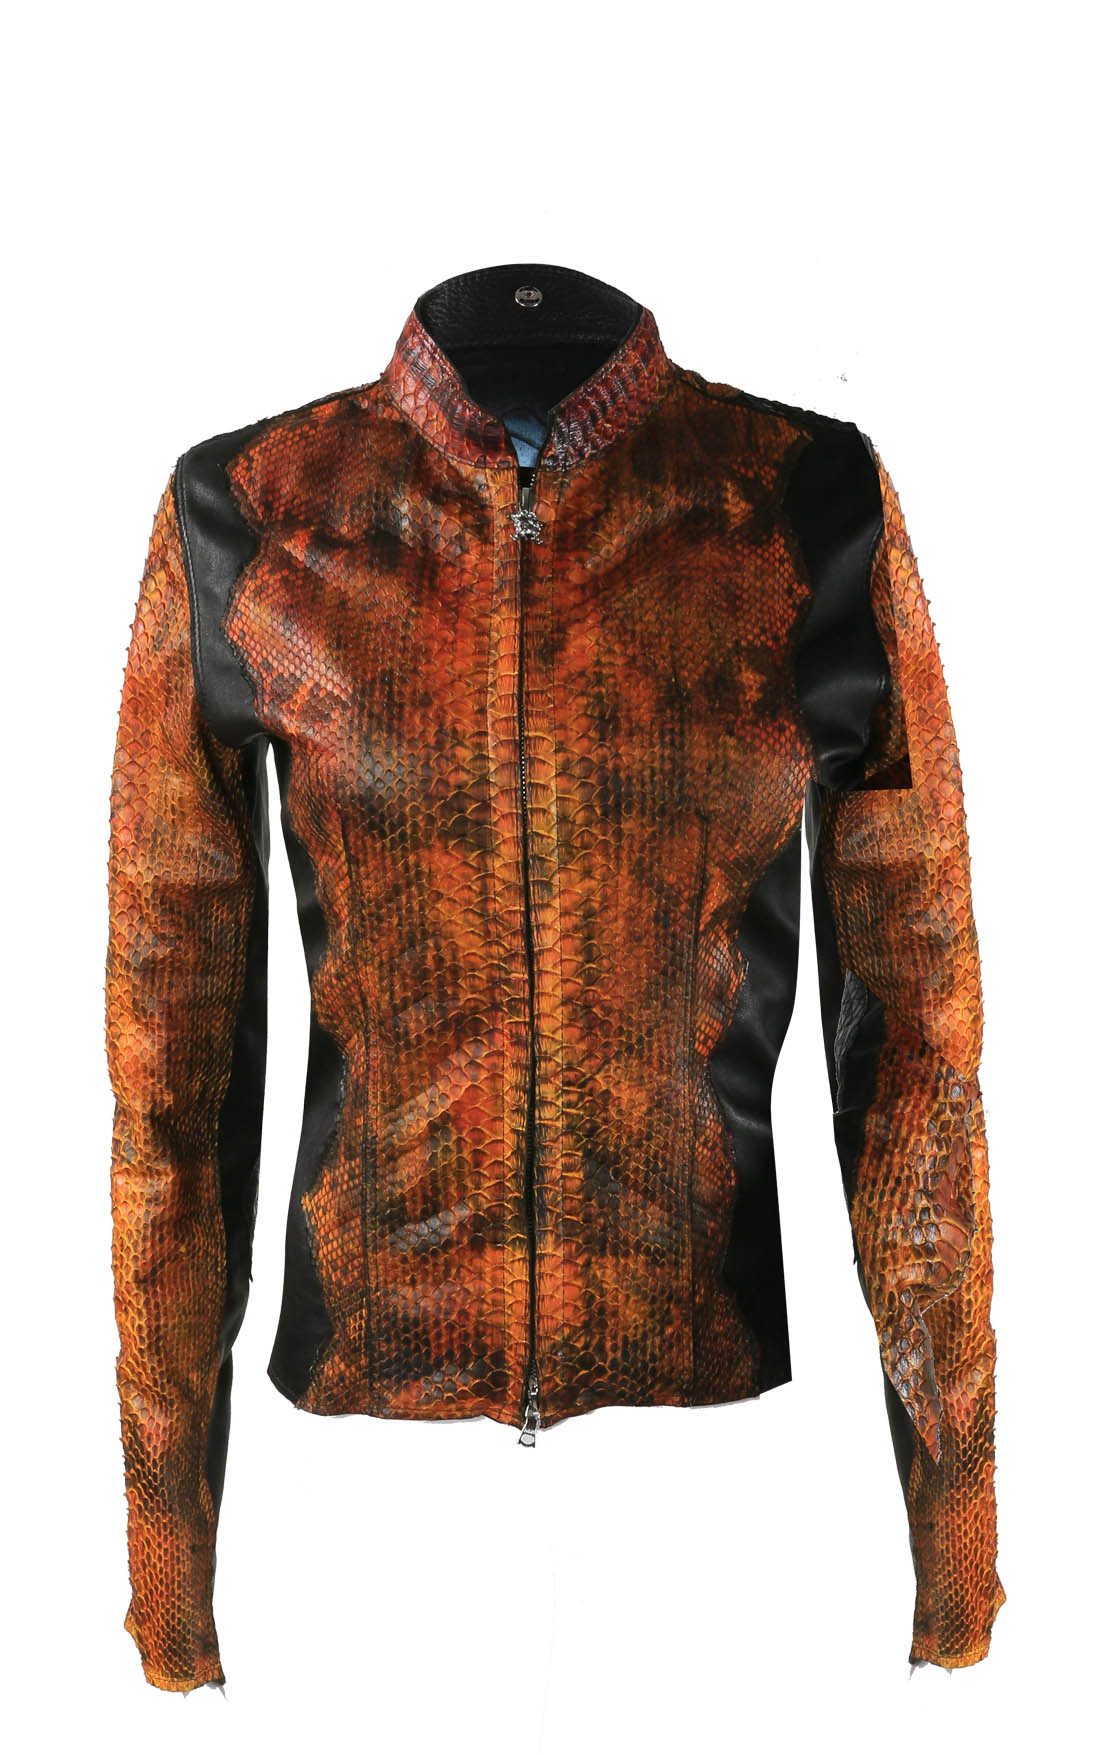 Anton - Fiery Orange Python Jacket (Pythonorange)